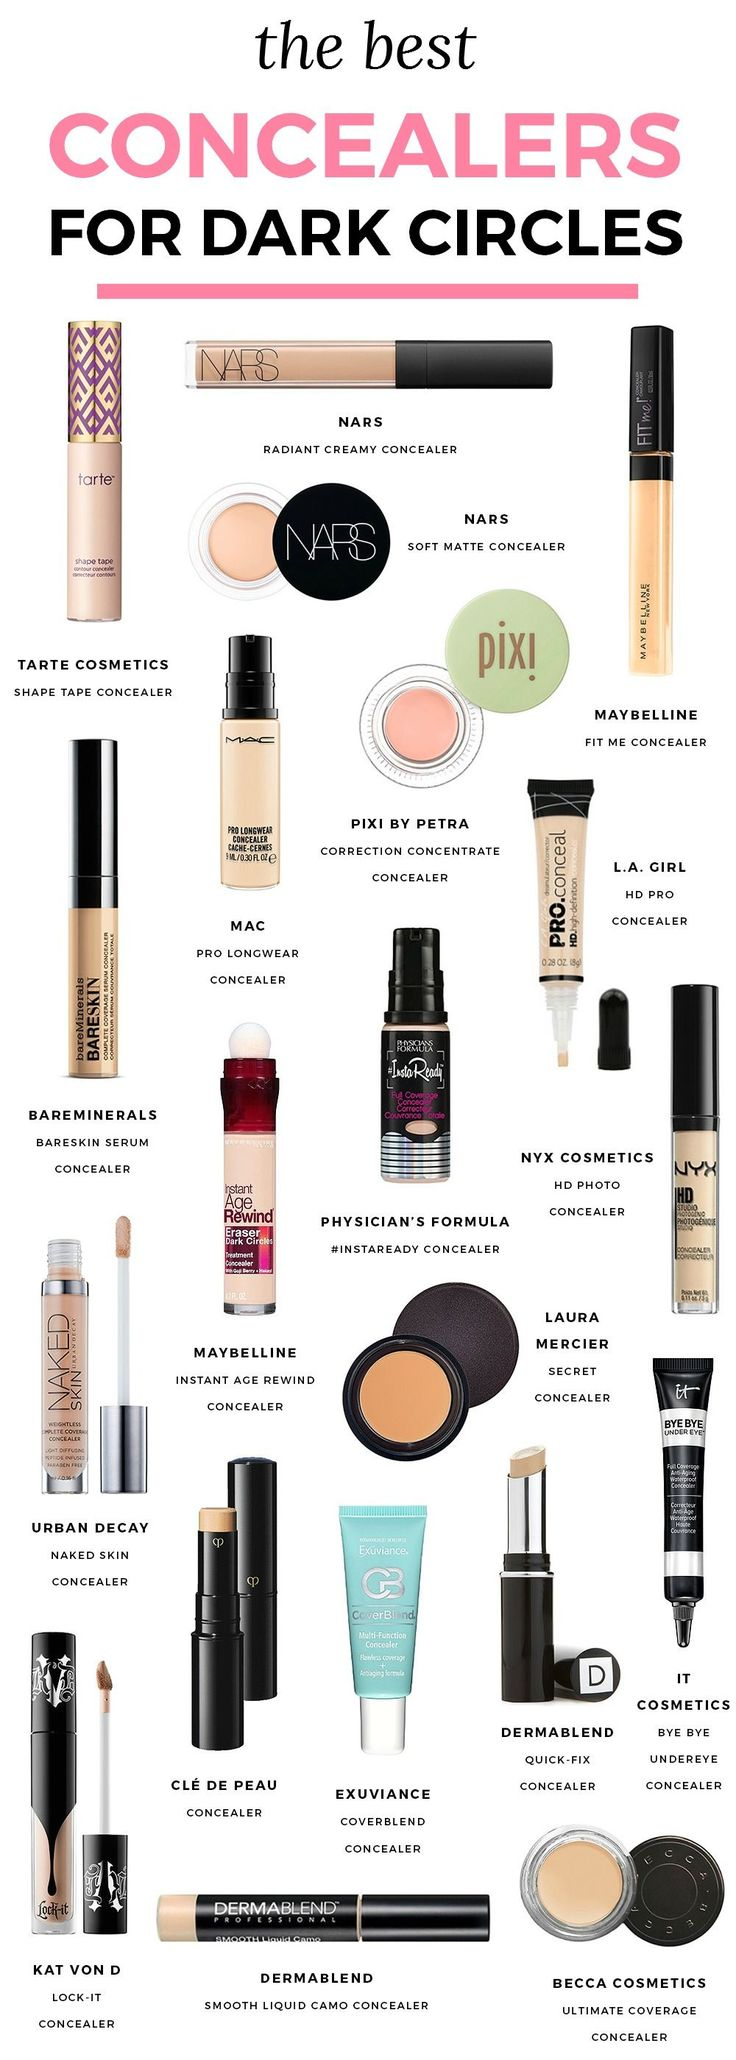 The best concealers for under eye circles and blemishes in every price range that provide full coverage for dark circles and spots. | Best concealers, best makeup, ride or die makeup, favorite makeup, favorite concealers, concealer for dark circles, beauty secrets, beauty tips, makeup artist favorite concealers, Tarte Shape Tape, NARS Radiant Concealer, Maybelline Fit Me, color correcting concealer, Florida beauty blogger Ashley Brooke Nicholas